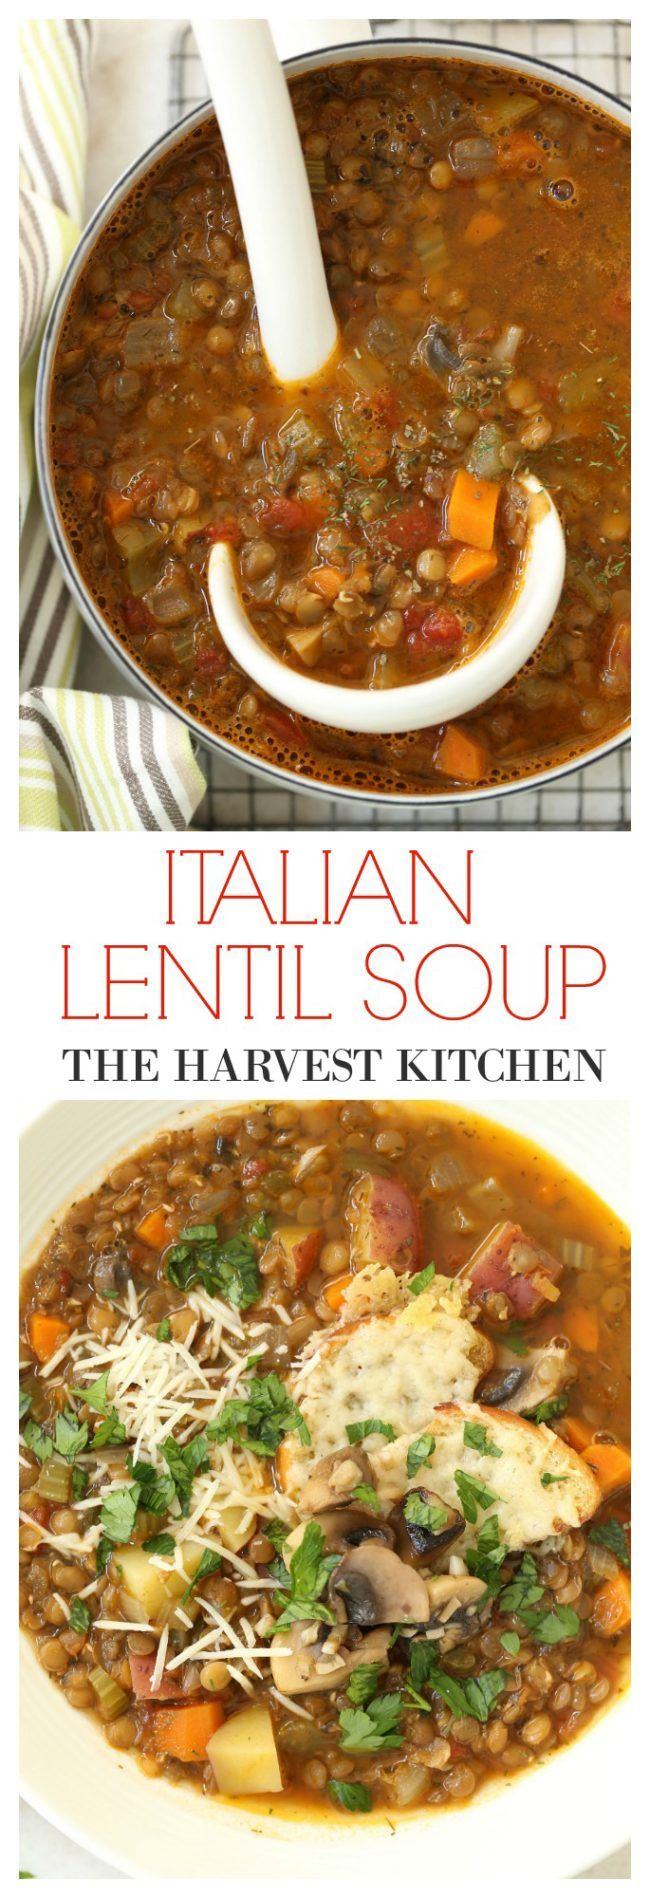 Rich hearty Italian Lentil Soup seasoned with basil, oregano, dill and richly…